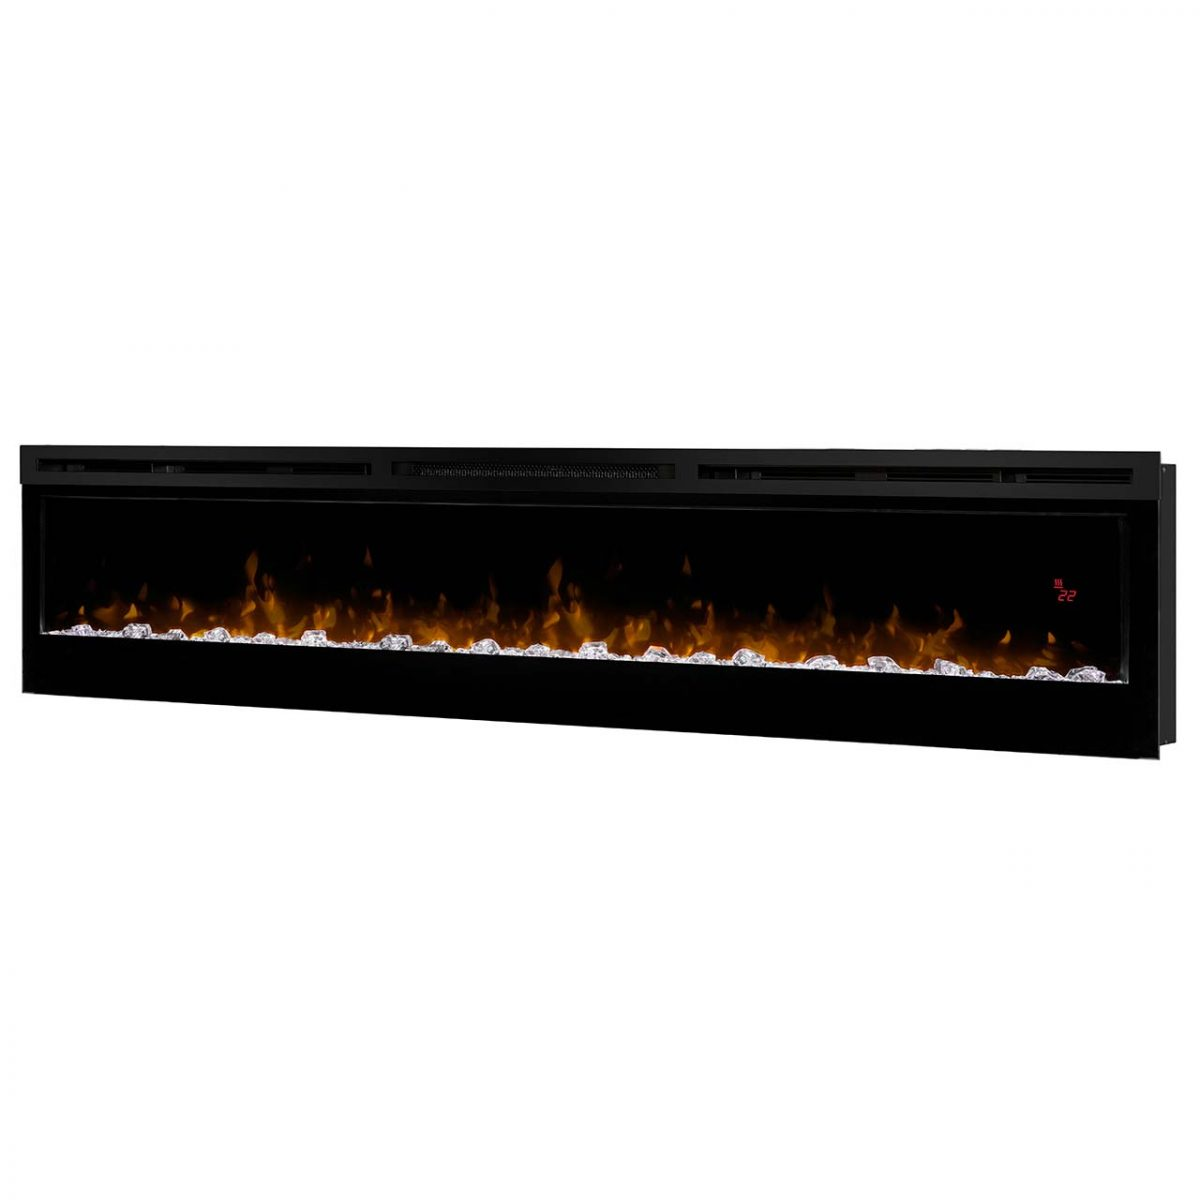 Affordable Gas Fireplace Surrey